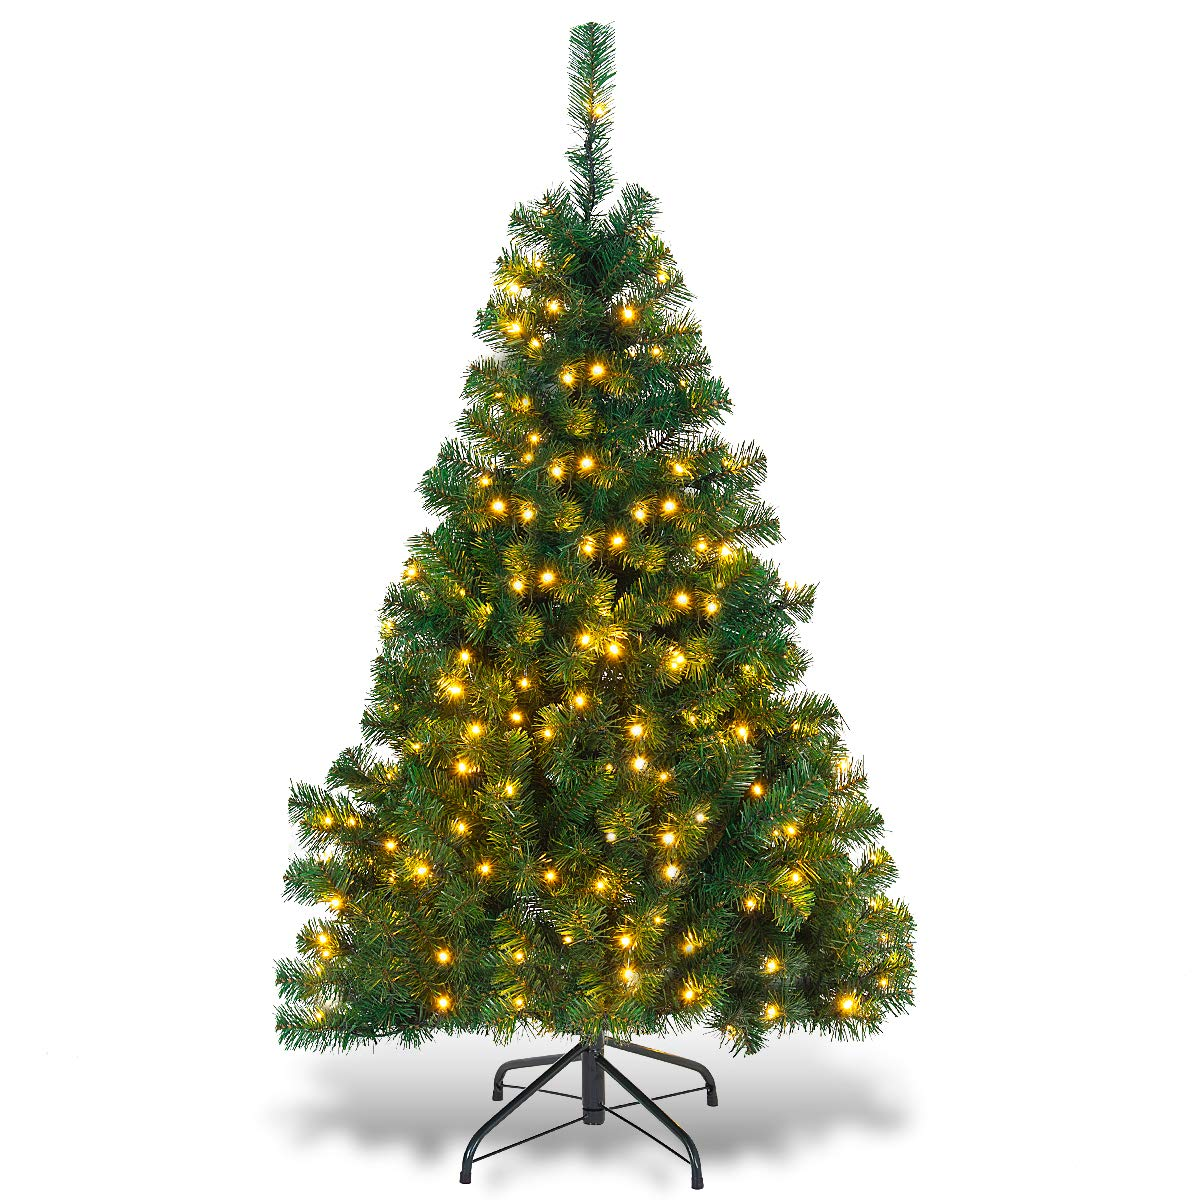 Artificial Christmas Tree With Lights.Goplus Artificial Christmas Tree Premium Spruce Hinged Tree With Led Lights And Solid Metal Stand Ul Certified Transformer 4 5ft 398 Branch Tips